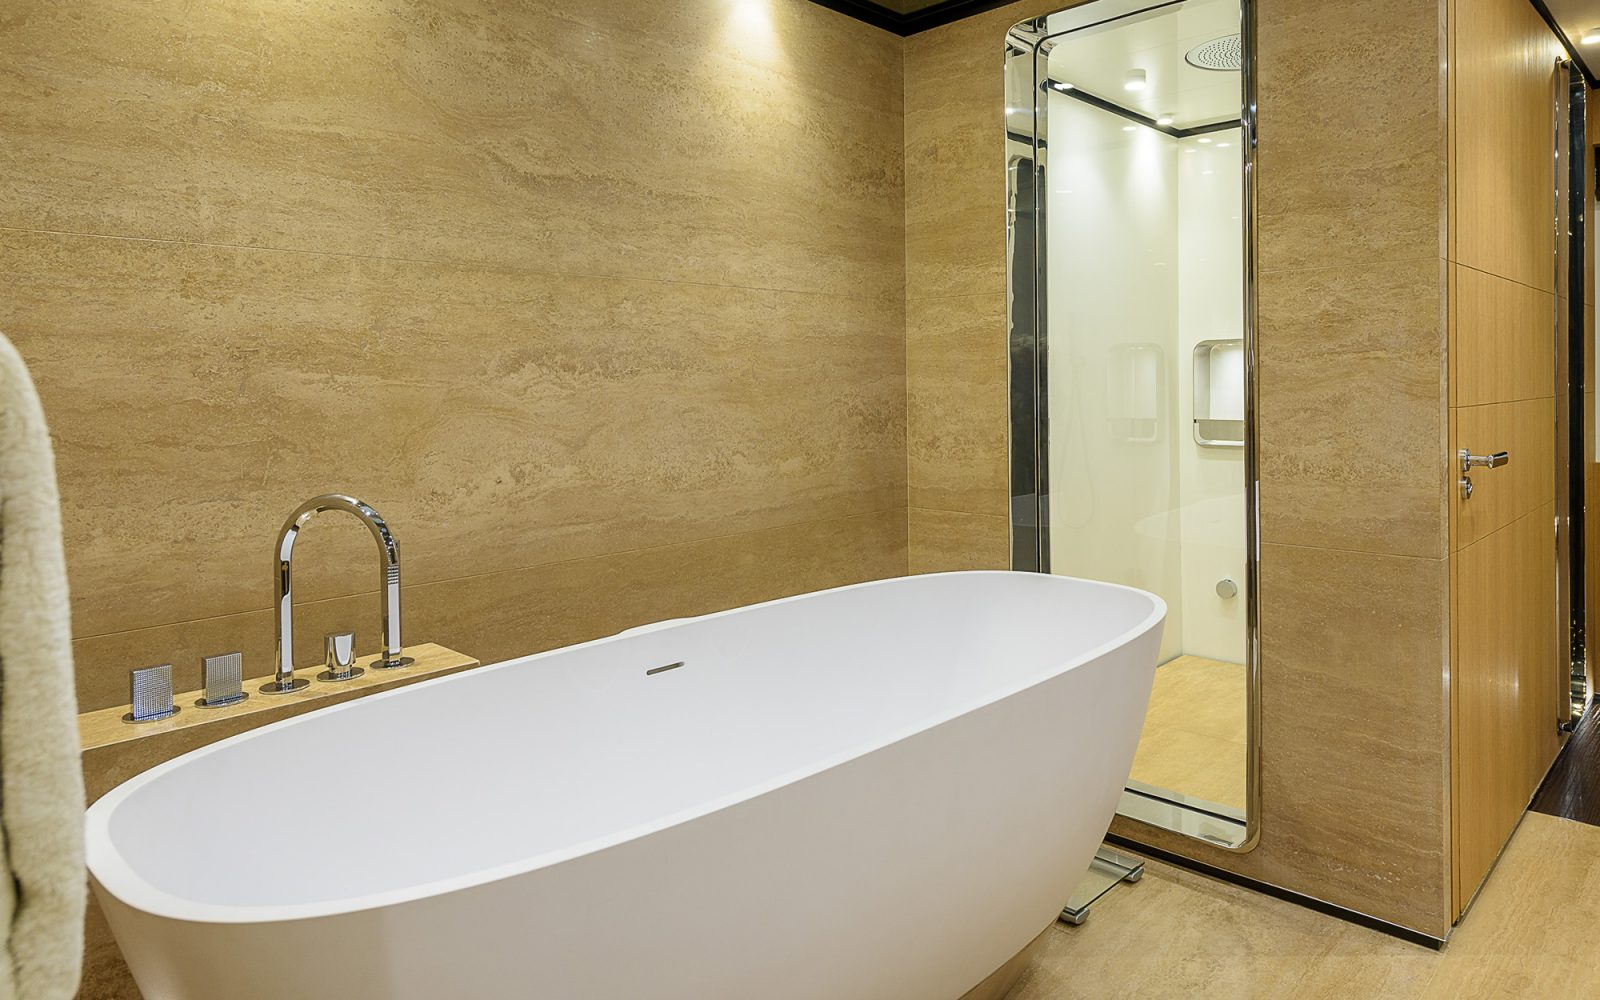 MR. T master bath tub | Mr. T